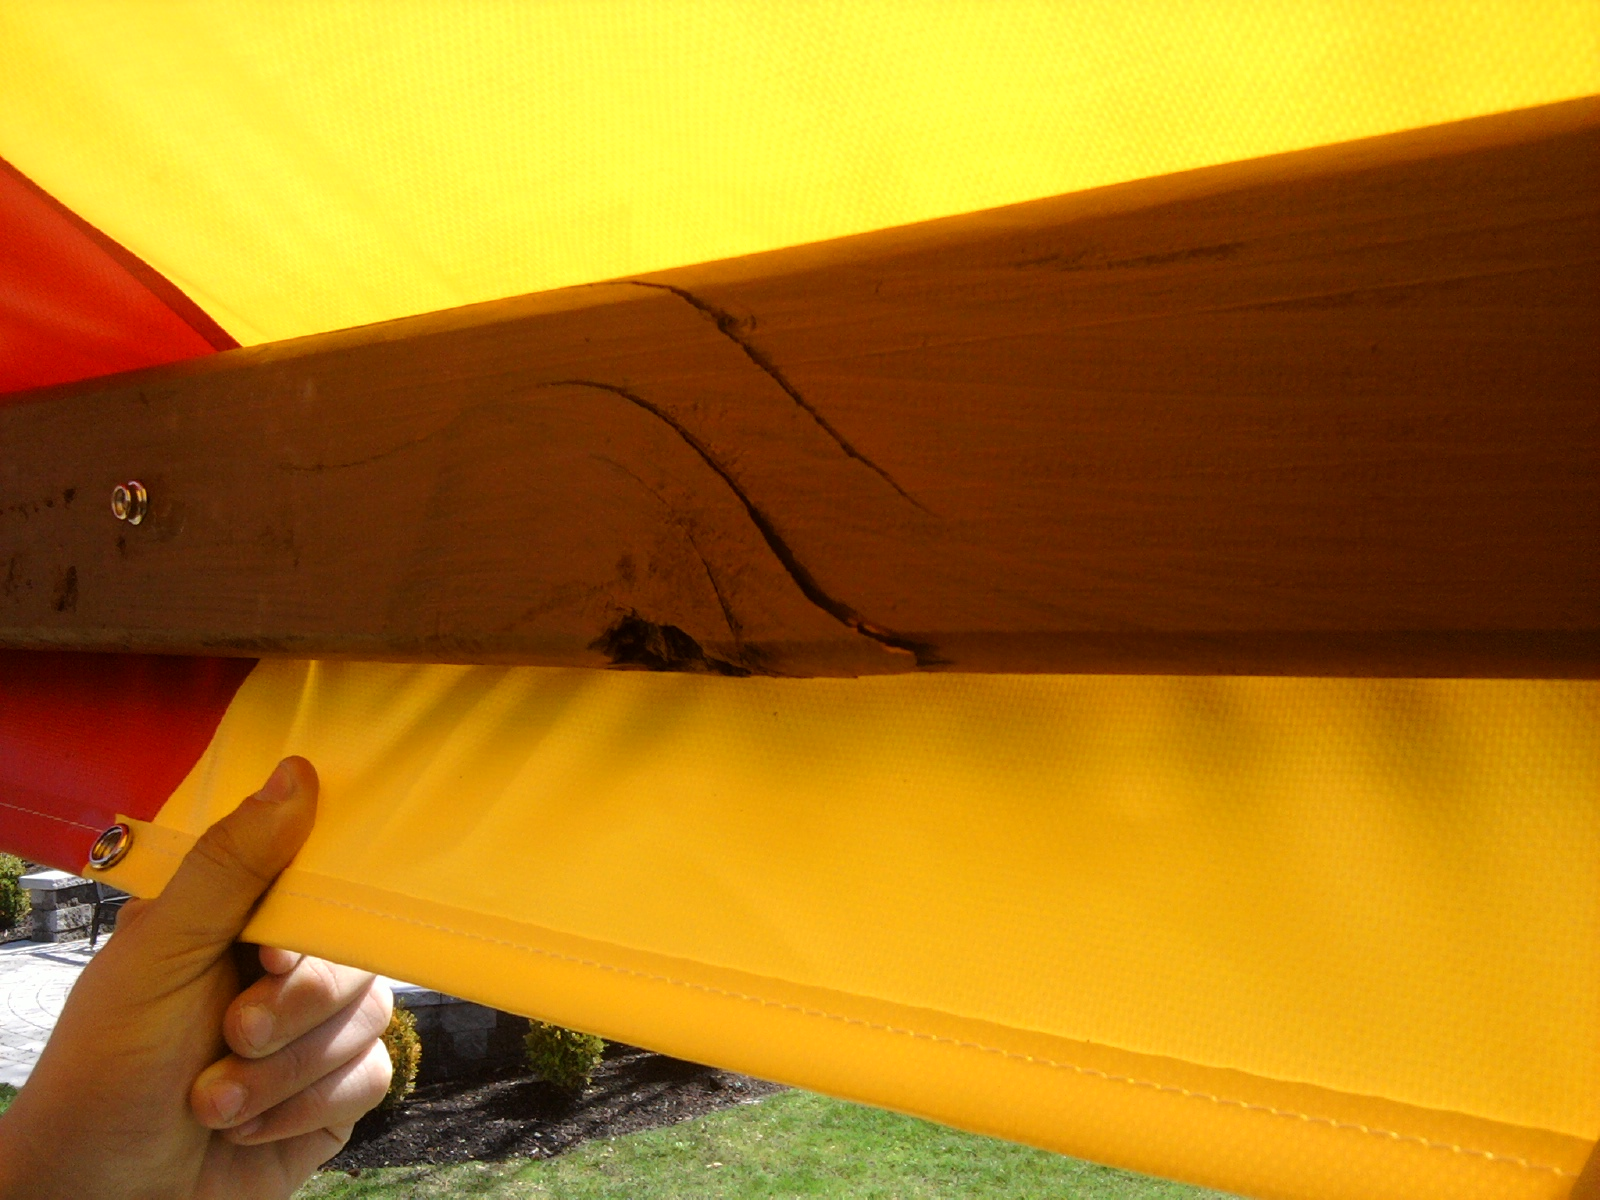 Damaged Redwood Swing Set Tarp Board & 7 Tips for Maintaining a Redwood Swing Set - All About The House